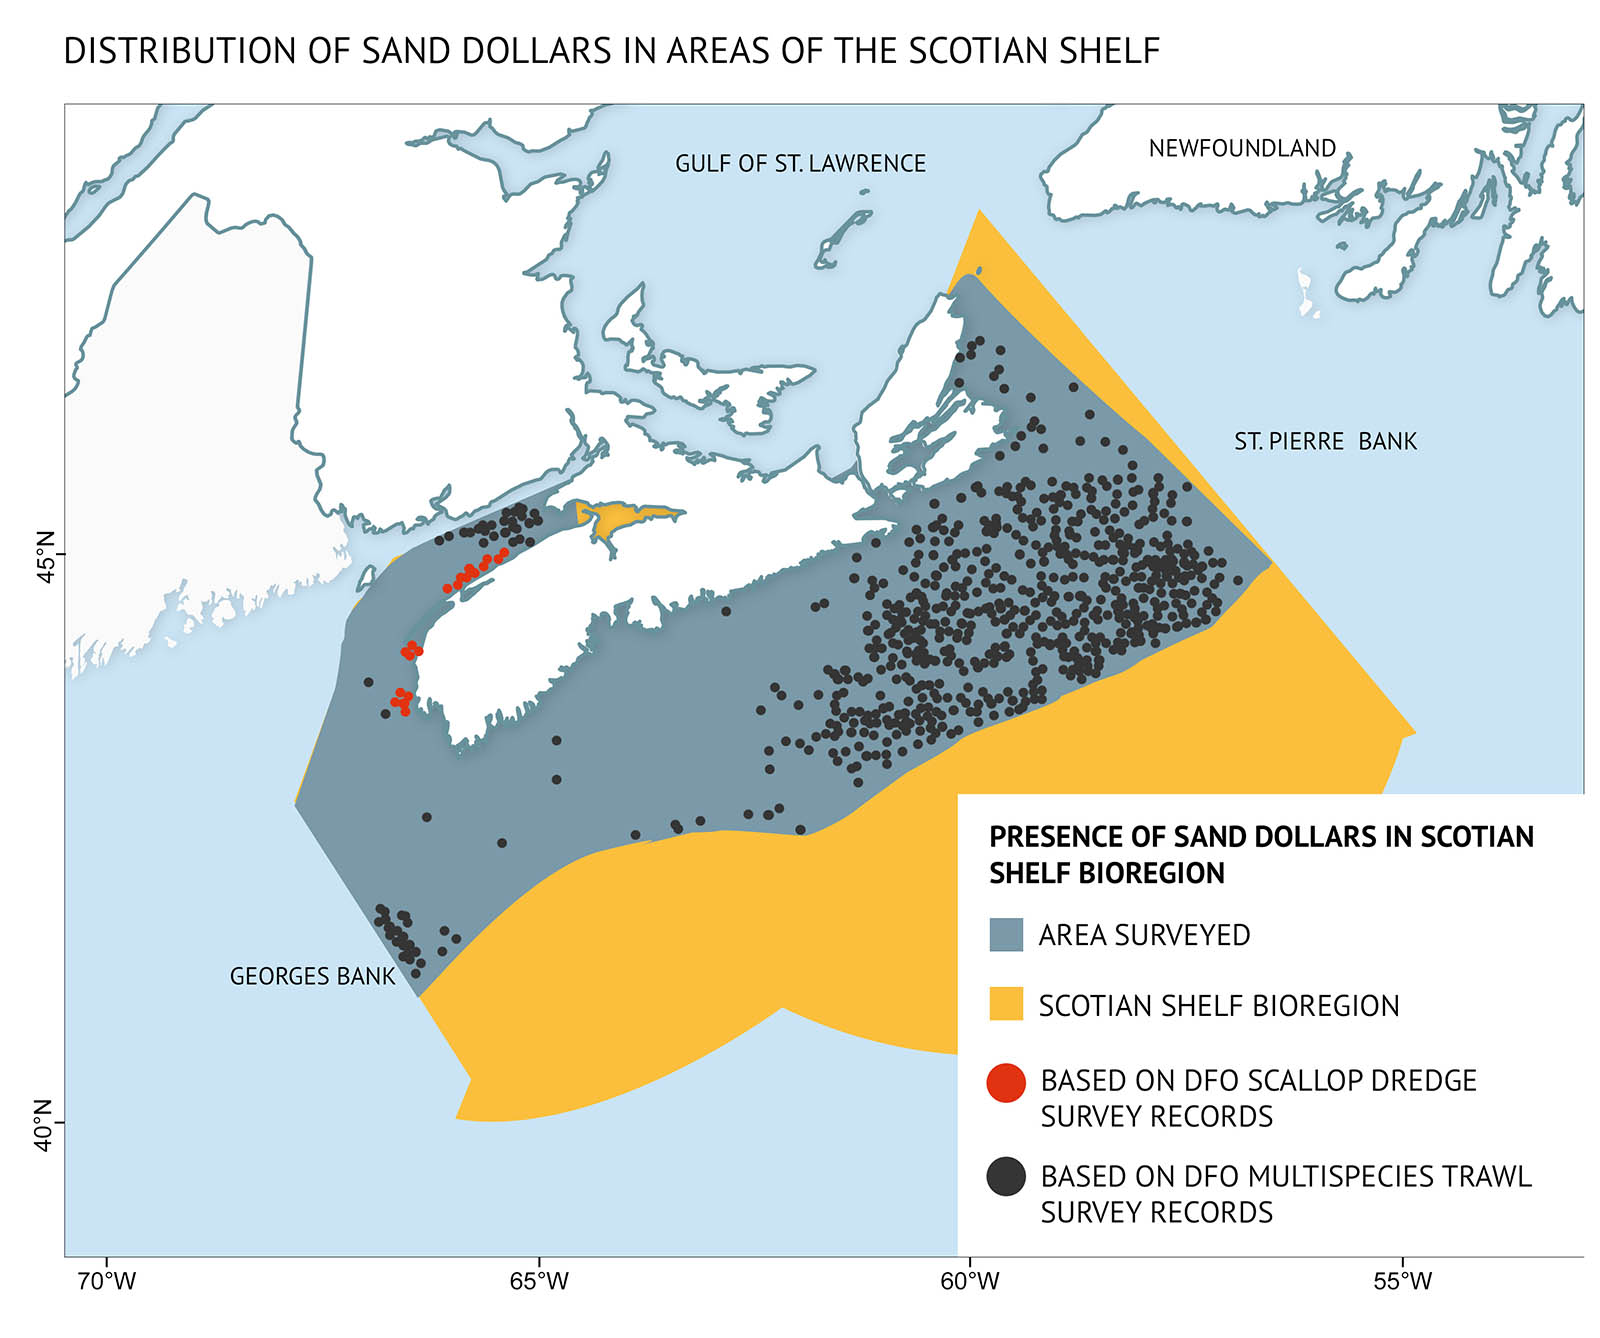 "Figure 17: Distribution of sand dollars in the Scotian Shelf bioregion from DFO multispecies trawl surveys (1999–2015) and scallop stock assessment surveys (1997, 2007). Sand dollars are particularly abundant in the Bay of Fundy, eastern Scotian Shelf, Georges Bank, Gulf of St. Lawrence, and the Grand Banks. (Reproduced with permission from Beazley et al. 2017). A map of the Scotian Shelf showing the distribution of sand dollars. Text above the map says ""Distribution of sand dollars in areas of the Scotian Shelf"". The area on the map goes from the Gulf of St. Lawrence and southern shore of Newfoundland at the top to Georges Bank at the bottom left with an outline of the Scotian Shelf bioregion. A legend in the bottom left-hand corner has text at the top saying ""Presence of sand dollars in Scotian Shelf bioregion"". Areas which have been surveyed are indicated by a blue shading, and the Scotian Shelf bioregion is shaded in orange. Red dots on the map indicate presence of sand dollars based on DFO scallop dredge survey records, and black dots indicate presence of sand dollars based on DFO multispecies trawl survey records. The Scotian Shelf bioregion extends to the right off the east coast of Nova Scotia. The area surveyed extends from the coast approximately half-way across the region. Black dots are spread across the shelf in the eastern portion of this surveyed area with a generally uniform distribution. Fewer black dots are located in the western portion of the area with a small cluster in the far bottom left corner. Another cluster occurs in the upper Bay of Fundy. A linear group of red dots is located along the eastern shore of the Bay of Fundy and part way around the western tip of Nova Scotia."